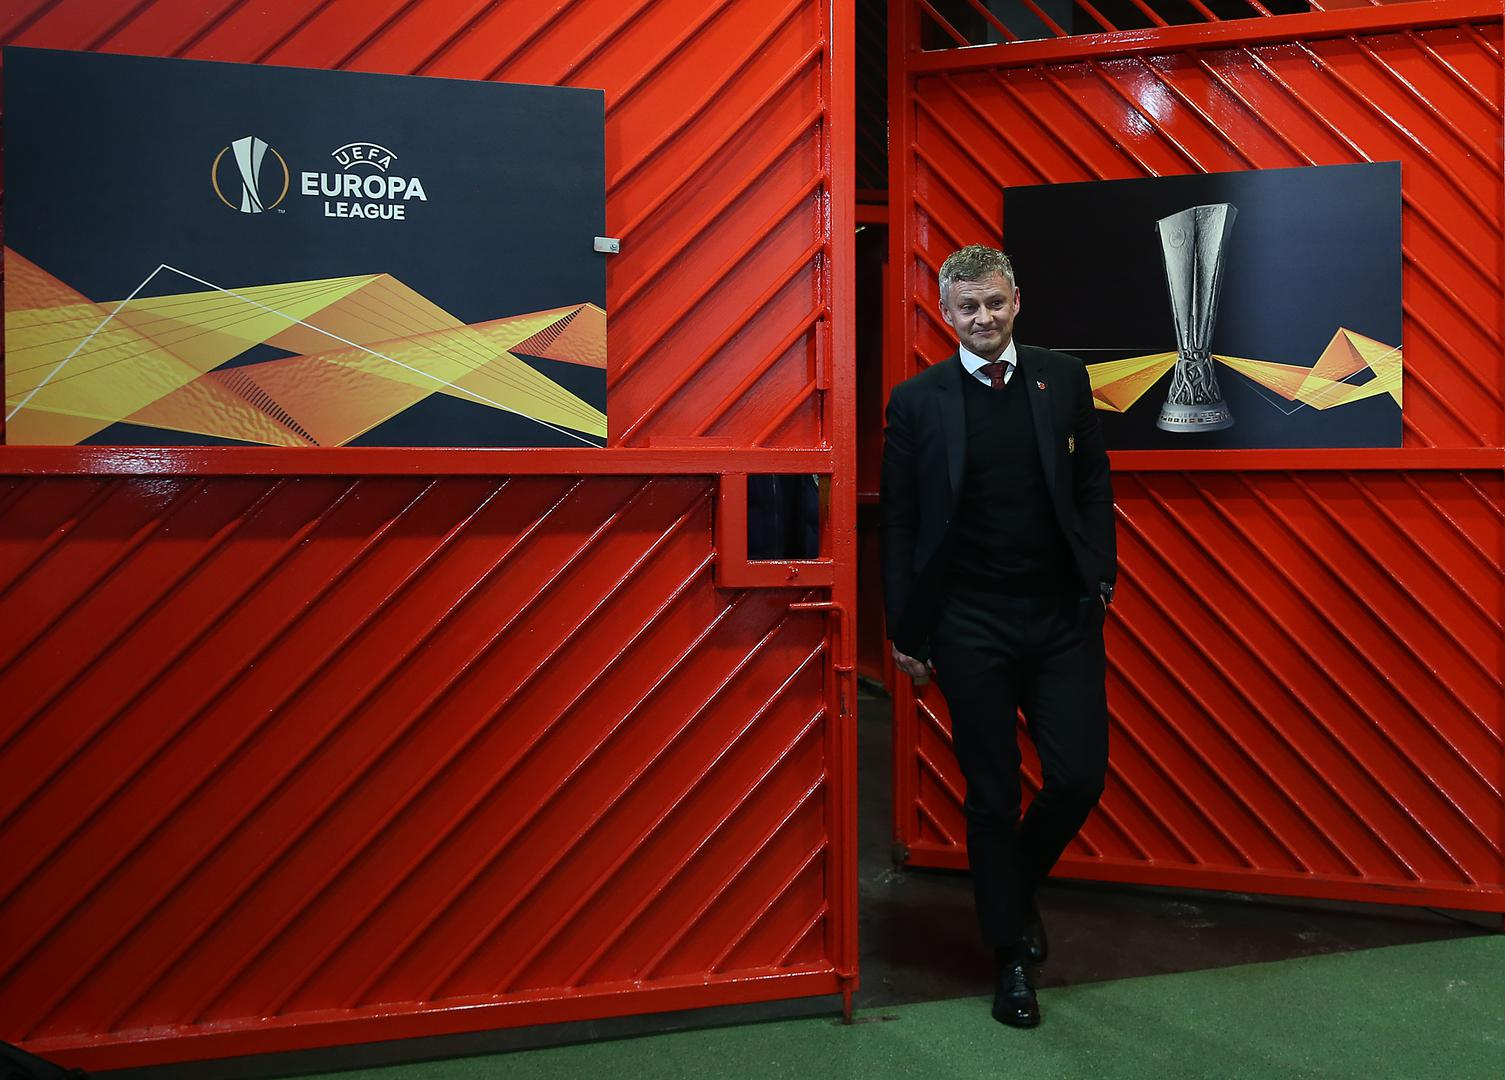 Solskjaer arrives with his side to face Partizan Belgrade